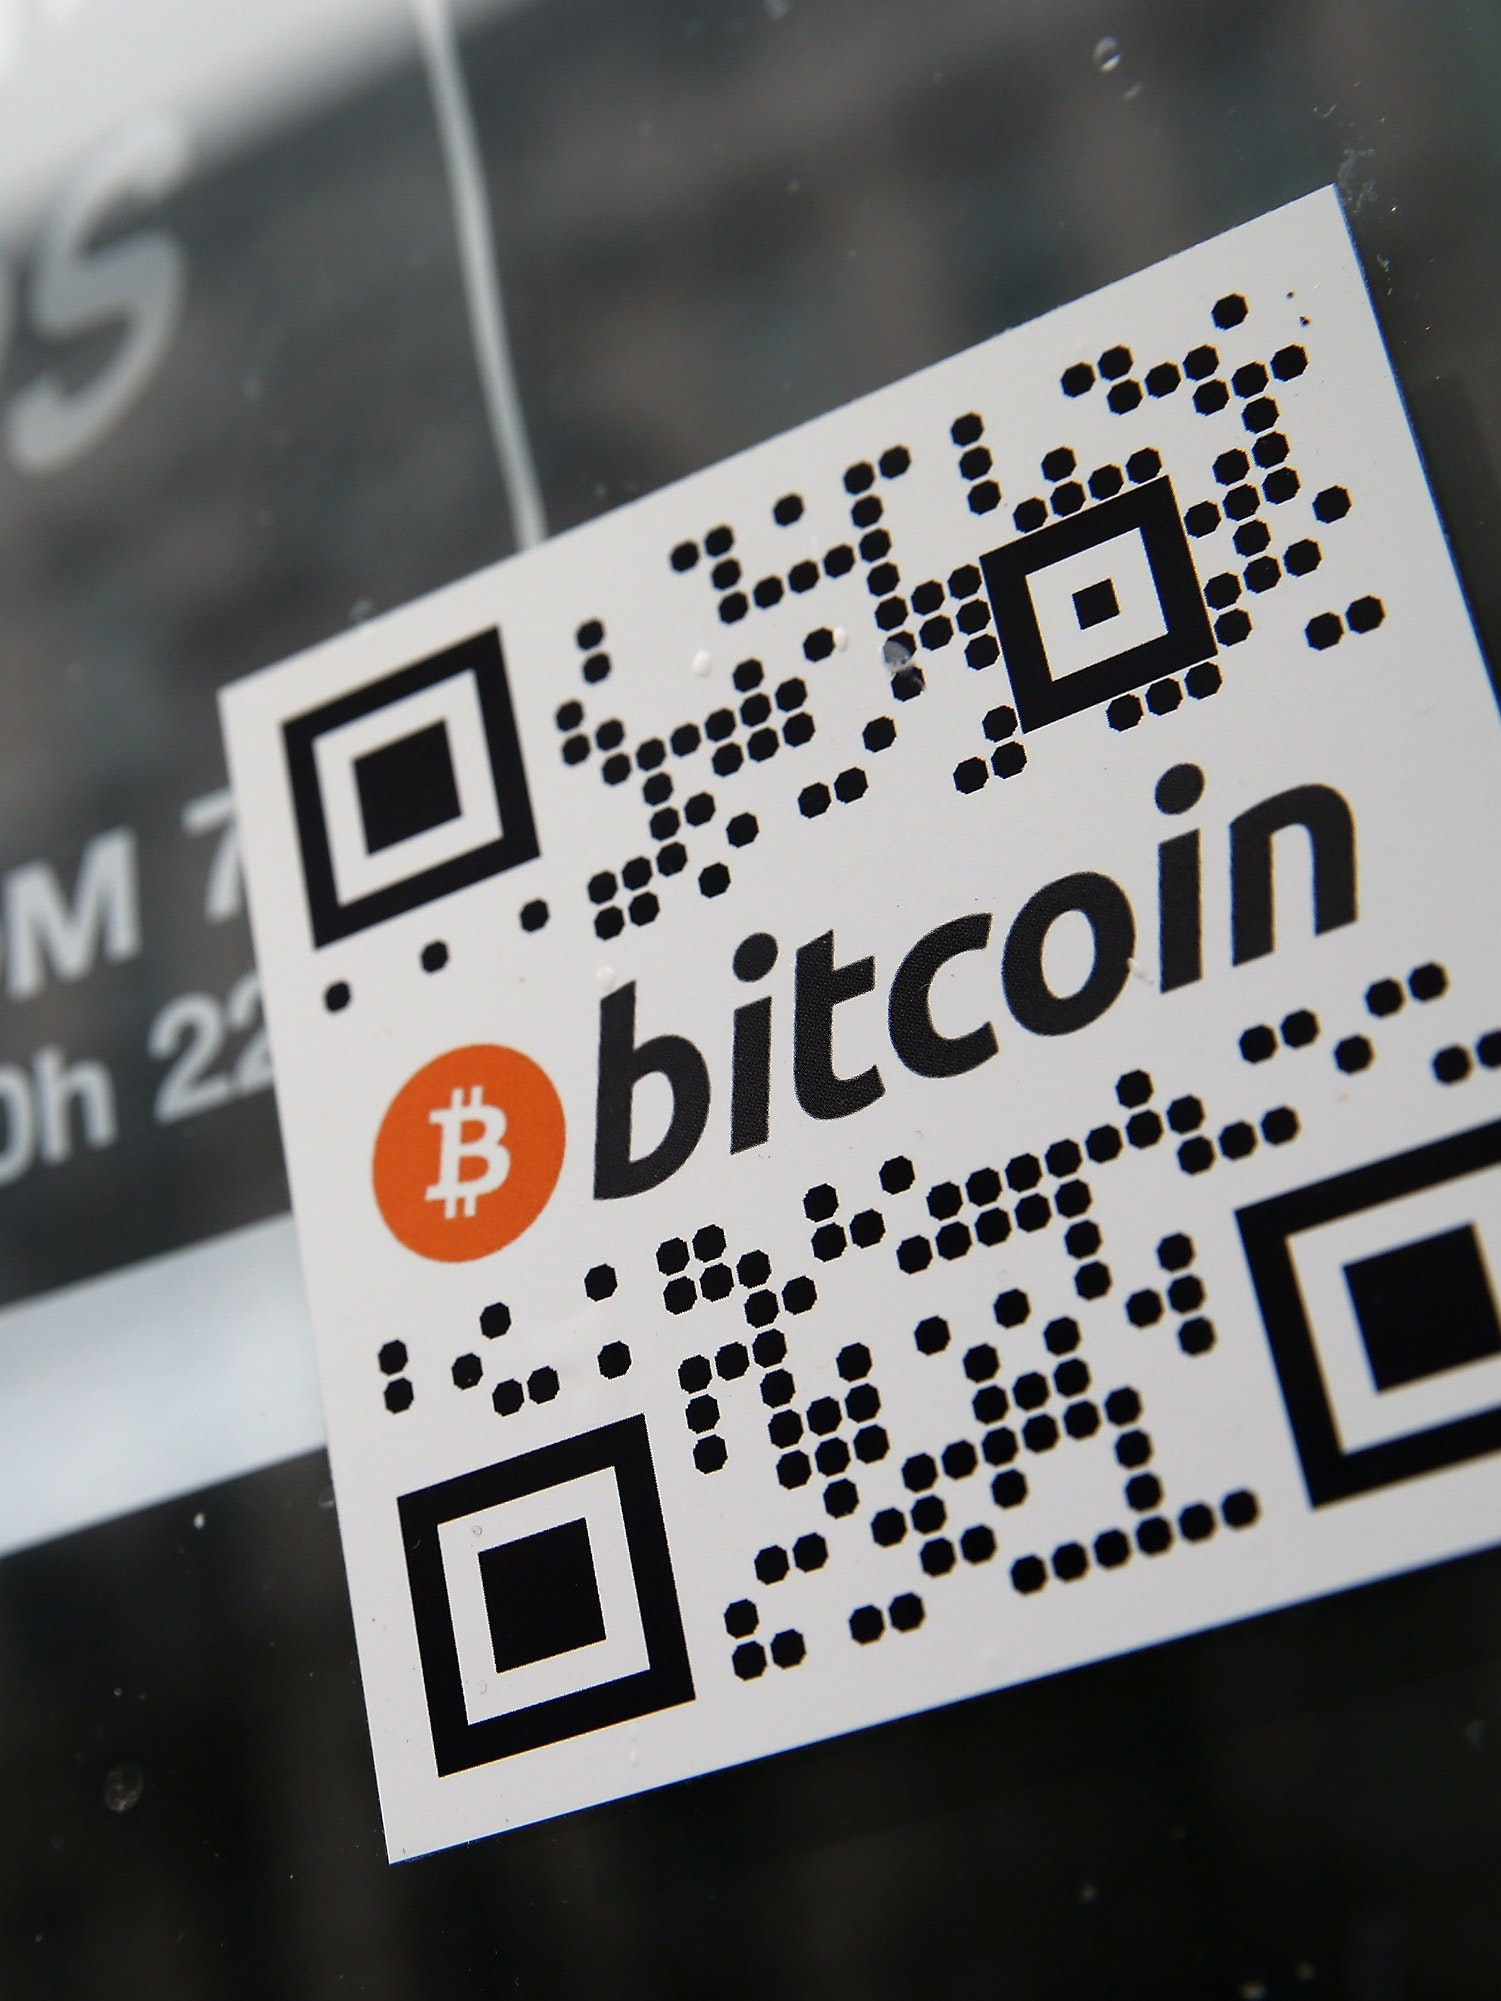 BERLIN, GERMANY - APRIL 11:  A sticker on the window of a local pub indicates the acceptance of Bitcoins for payment on April 11, 2013 in Berlin, Germany. Bitcoins are a digital currency traded on the MTGox exchange, and the value of the virtual money fluctuated from USD 260 per bitcoin down to USD 130 per bitcoin yesterday and recovered somewhat in trading today.  (Photo by Sean Gallup/Getty Images)